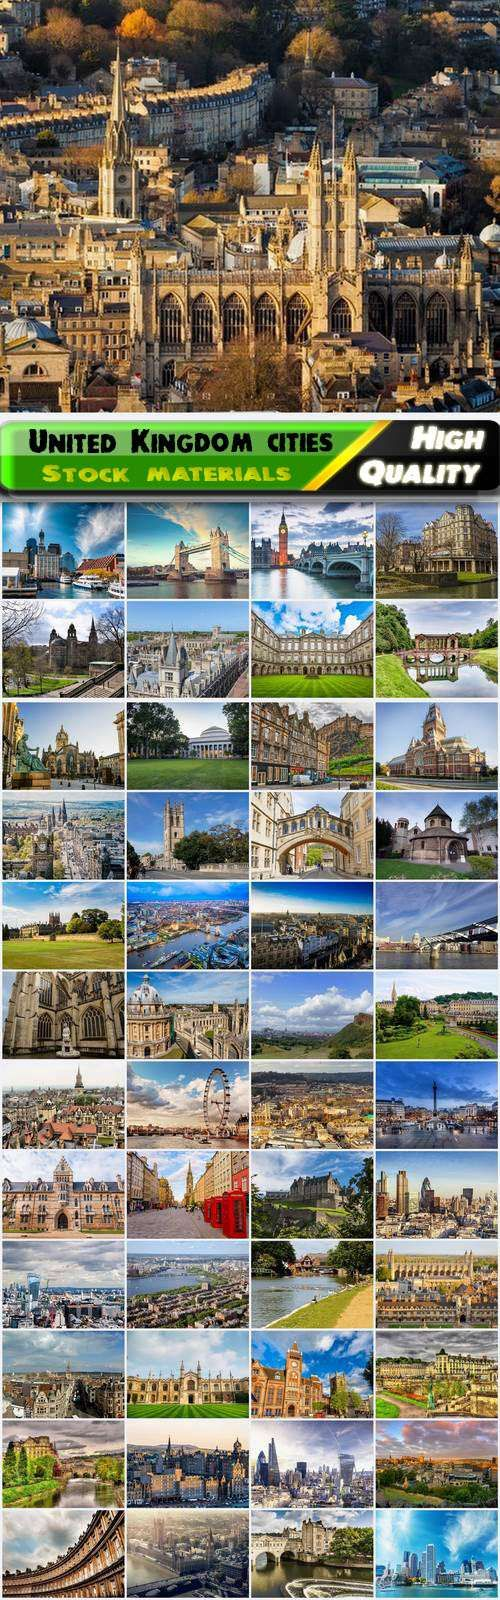 Famous United Kingdom cities London Oxford Edinburgh Cambridge Bath 50 HQ Jpg